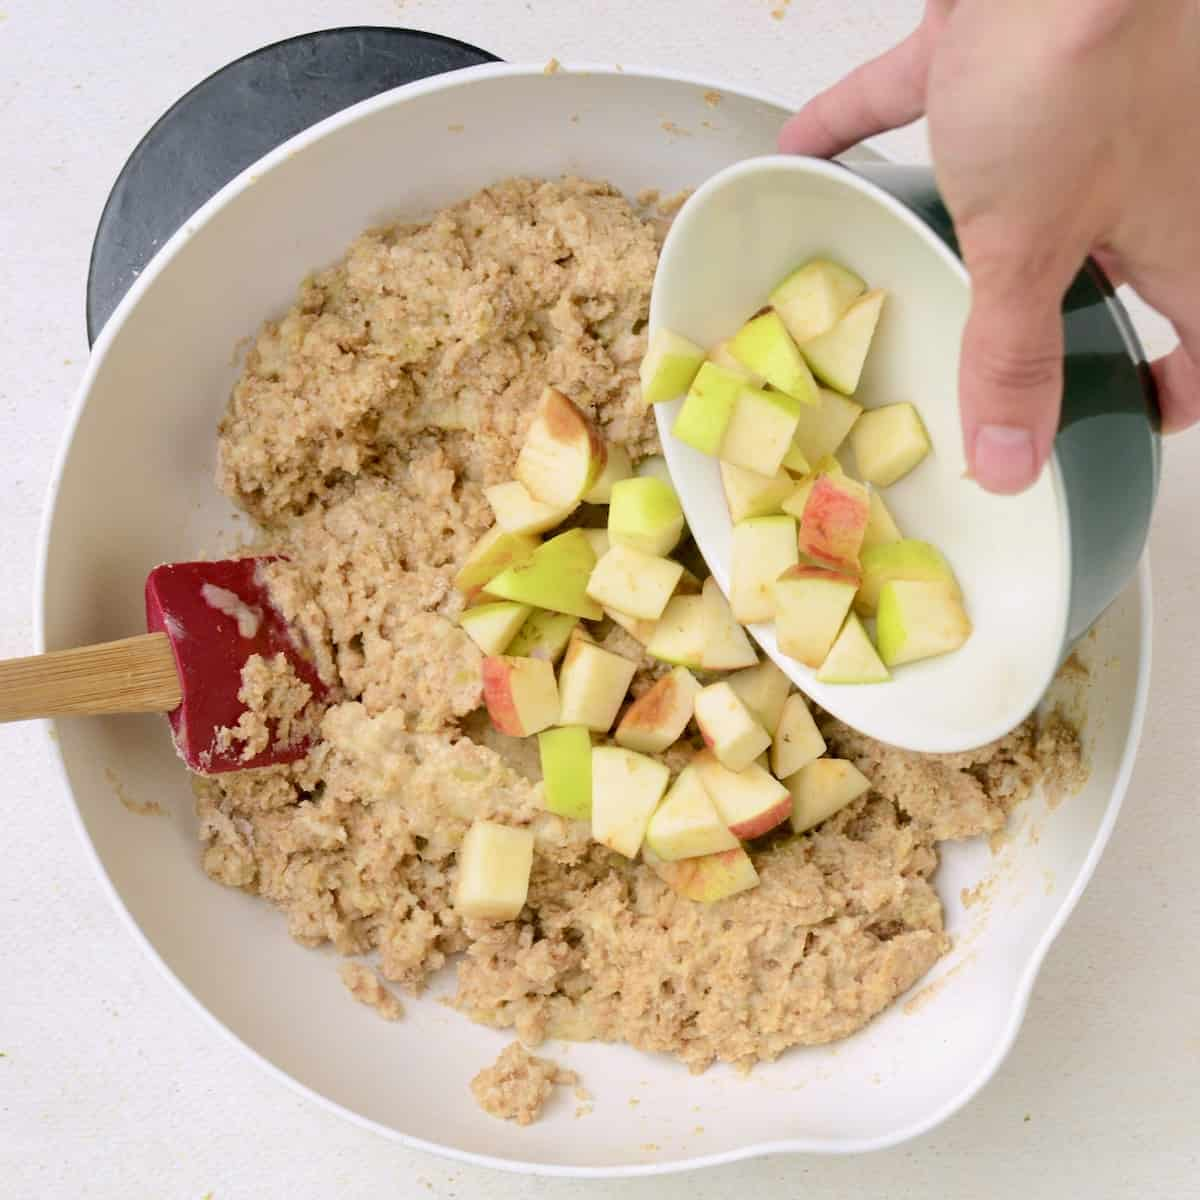 Adding the apple chunks into the cake batter.